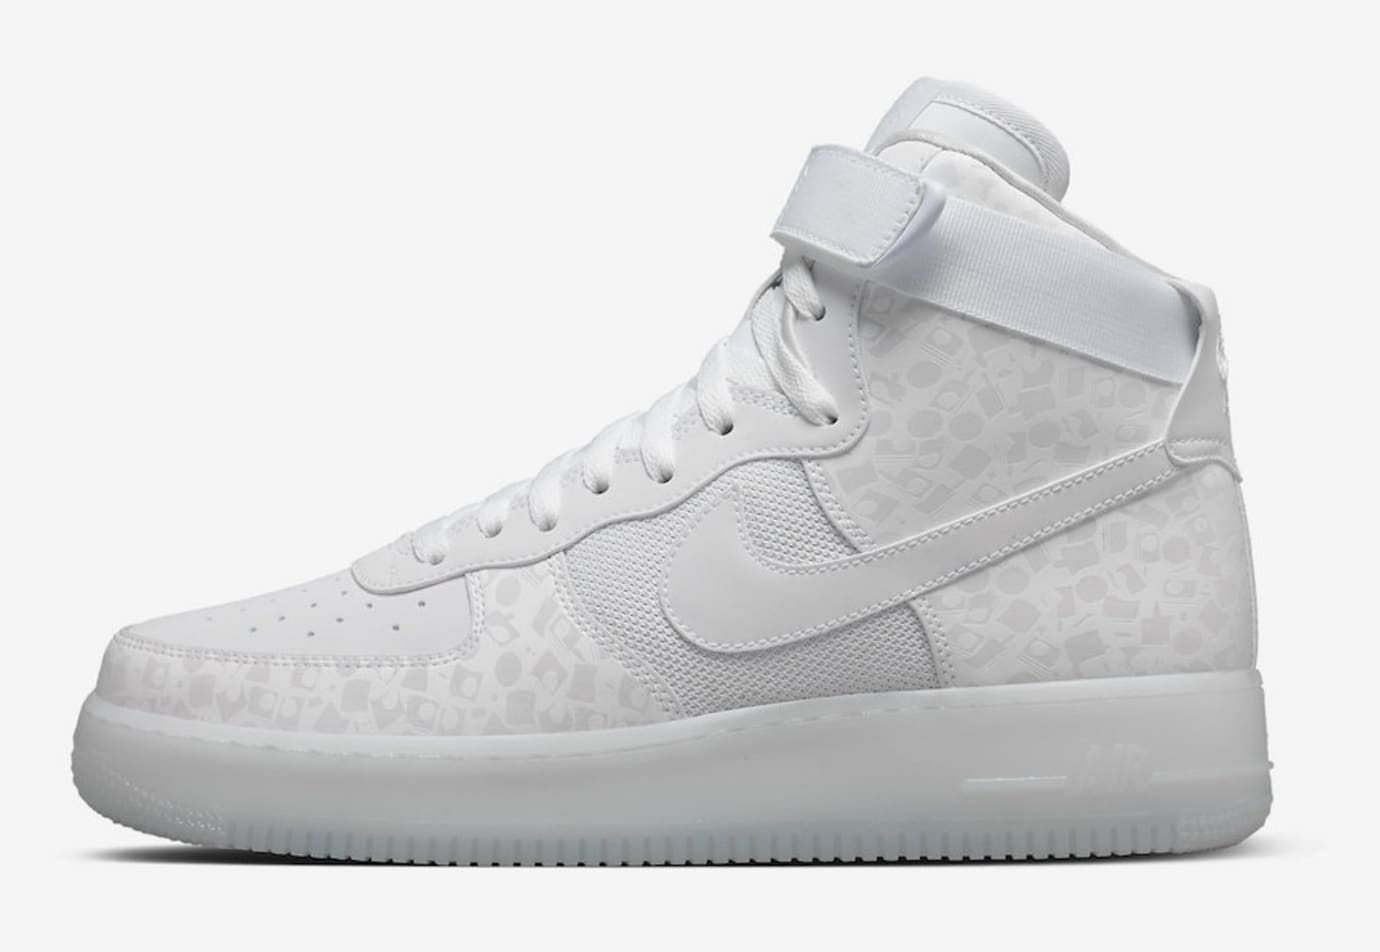 Stash x Nike Air Force 1 High AO9296-100 (Lateral)